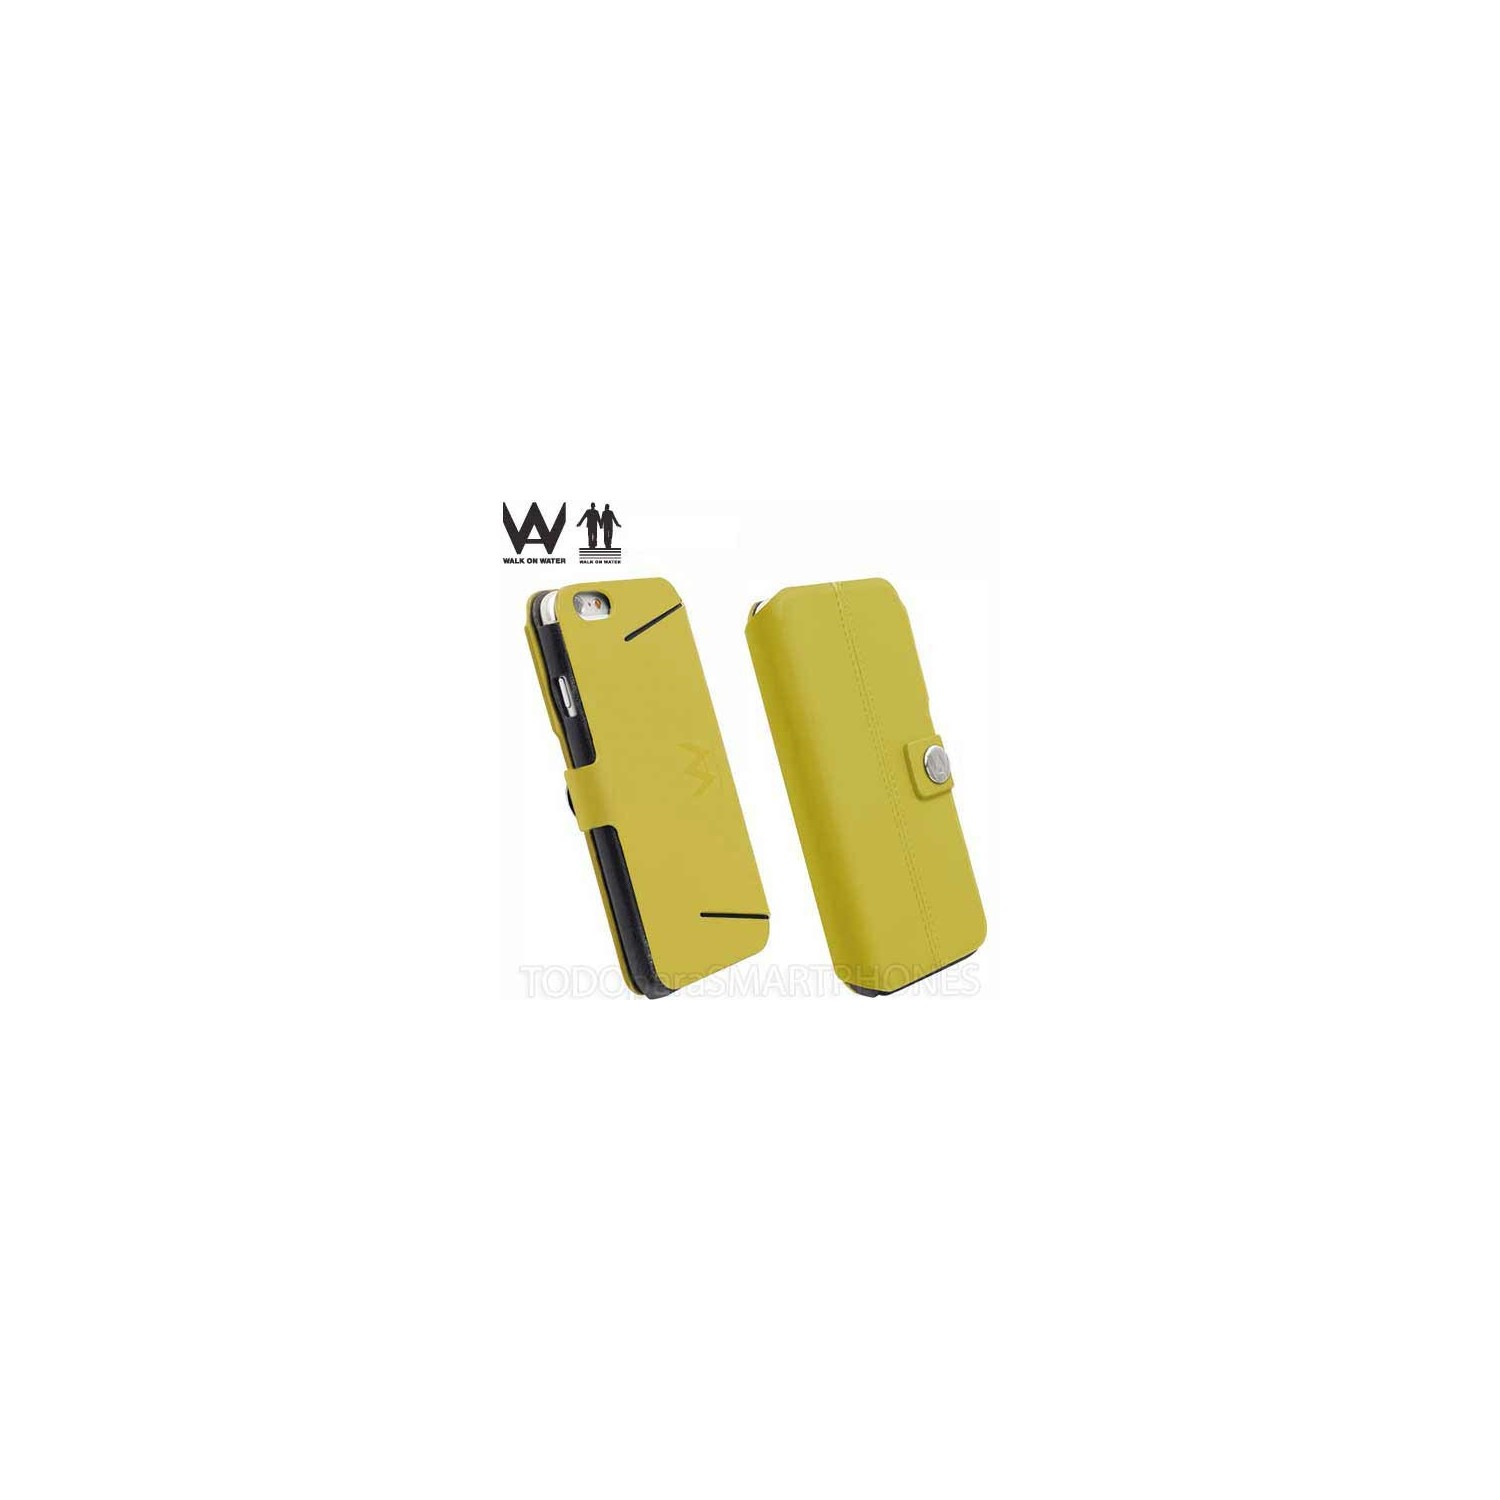 Case - Walk on Water Drop Off Carry Stand Case for iPhone 6 - Yellow